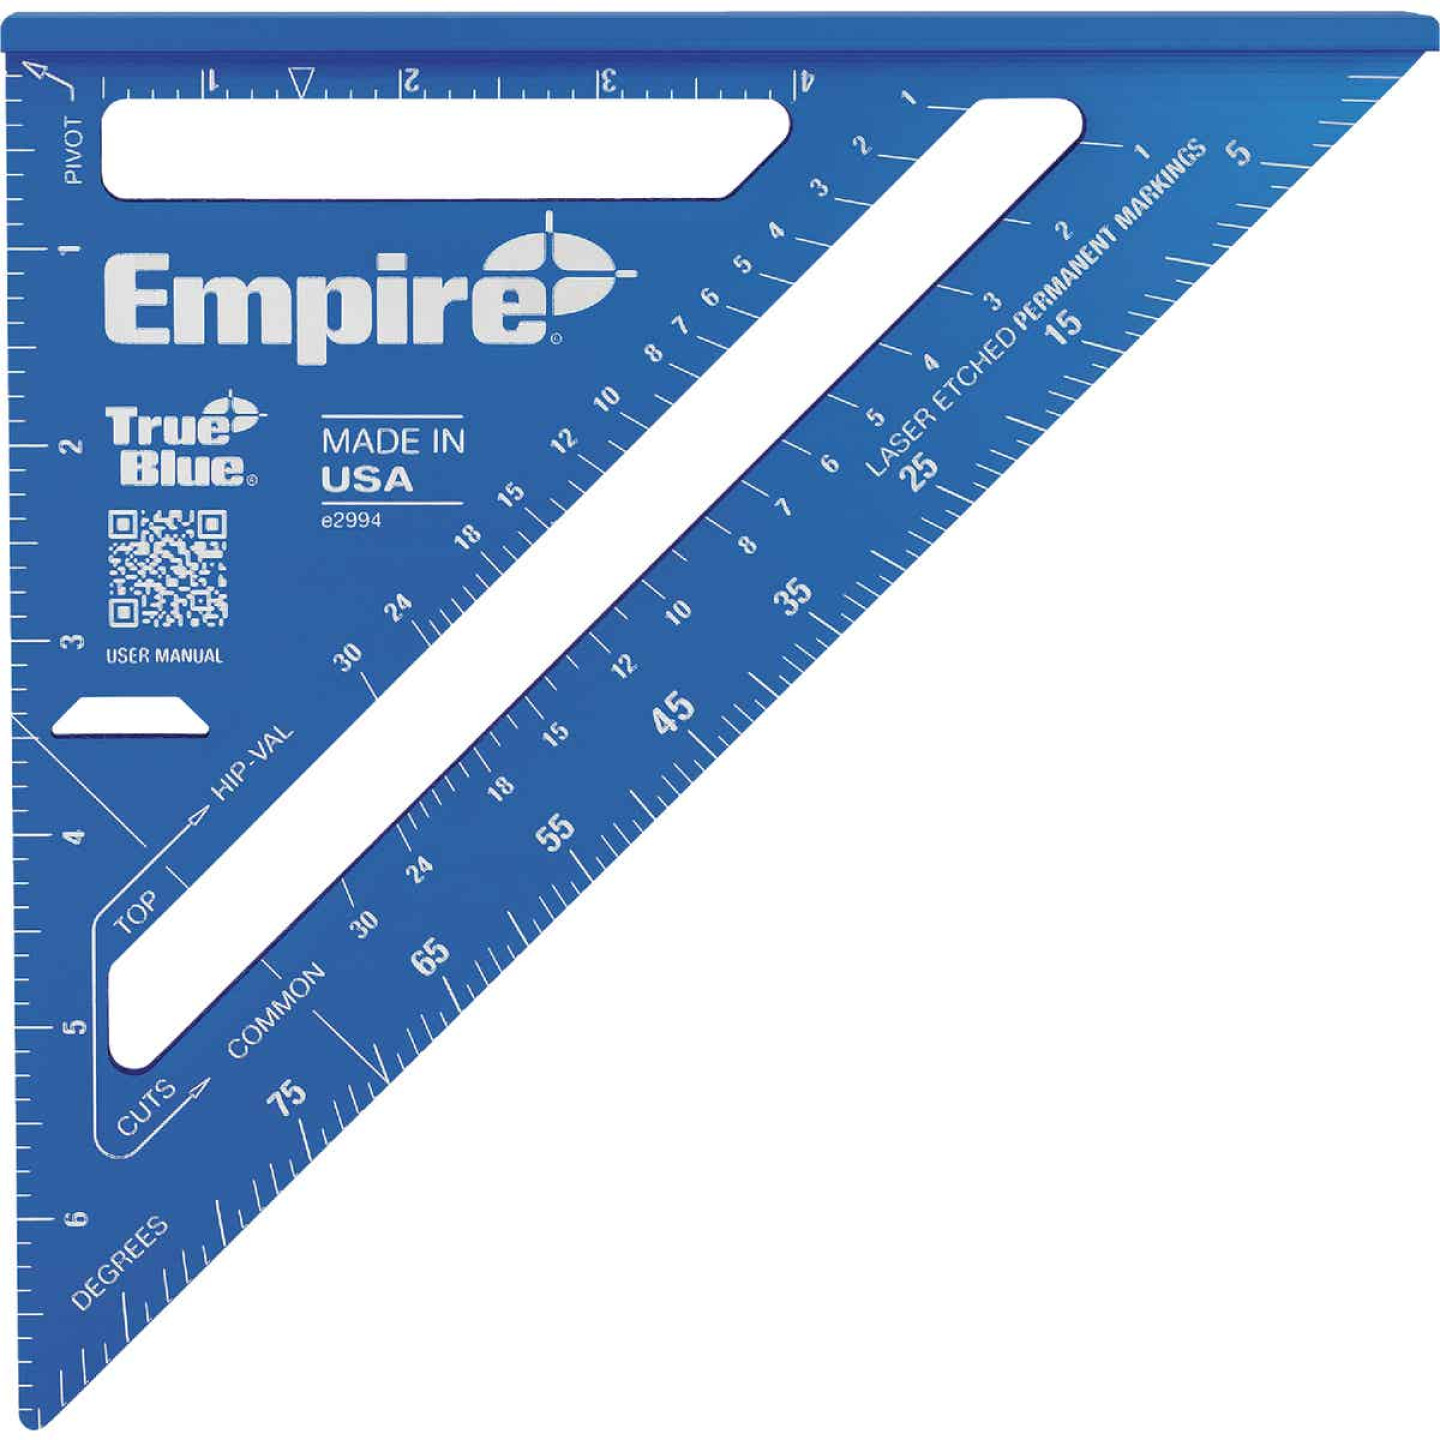 Empire True Blue 7 In. Aluminum Laser Etched Rafter Square Image 1